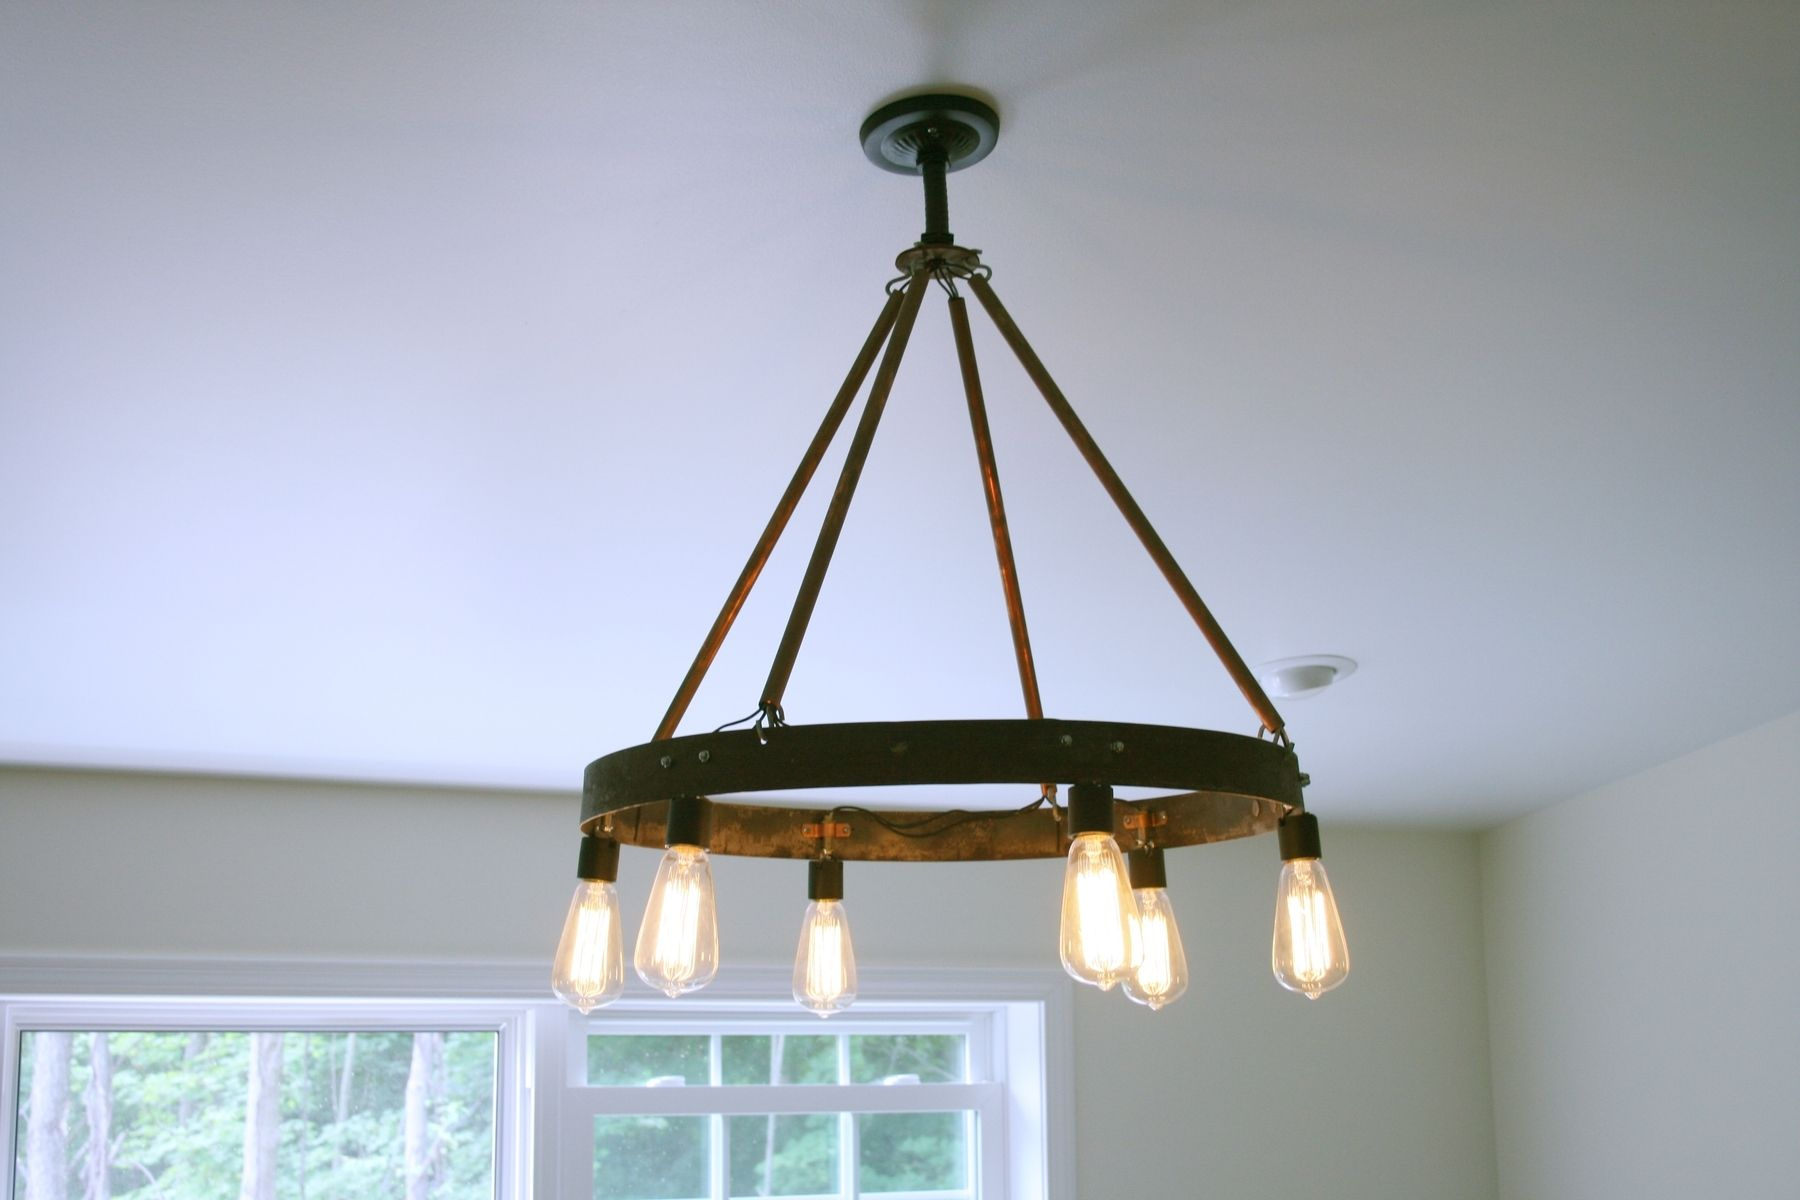 Buy a Custom Bourbon Barrel Ring Chandelier Featuring 6 Edison